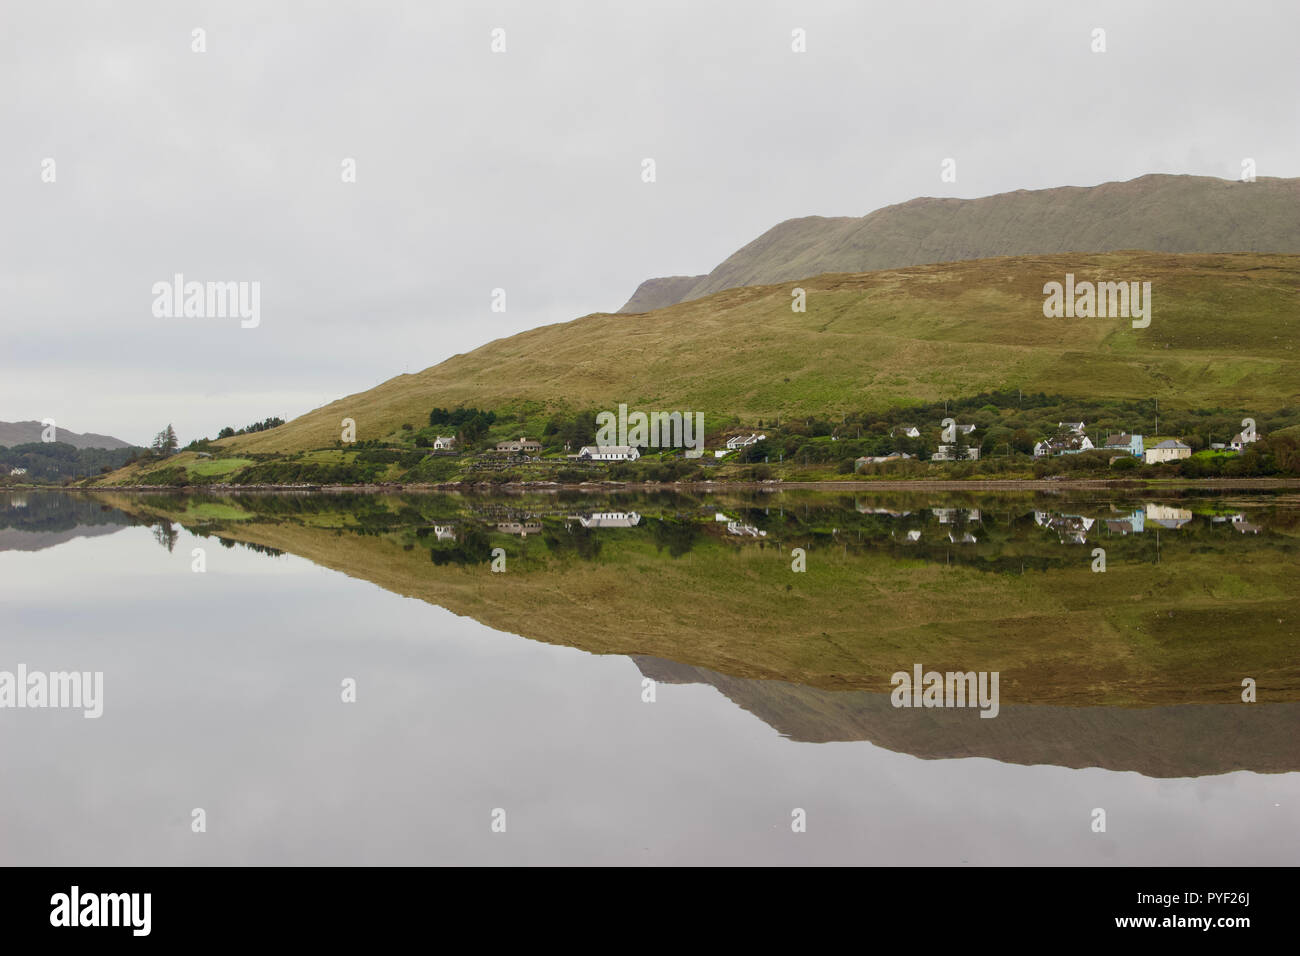 View of a still lake on an overcast day with reflection of the landscape of Connemara in the region of western Ireland - Stock Image